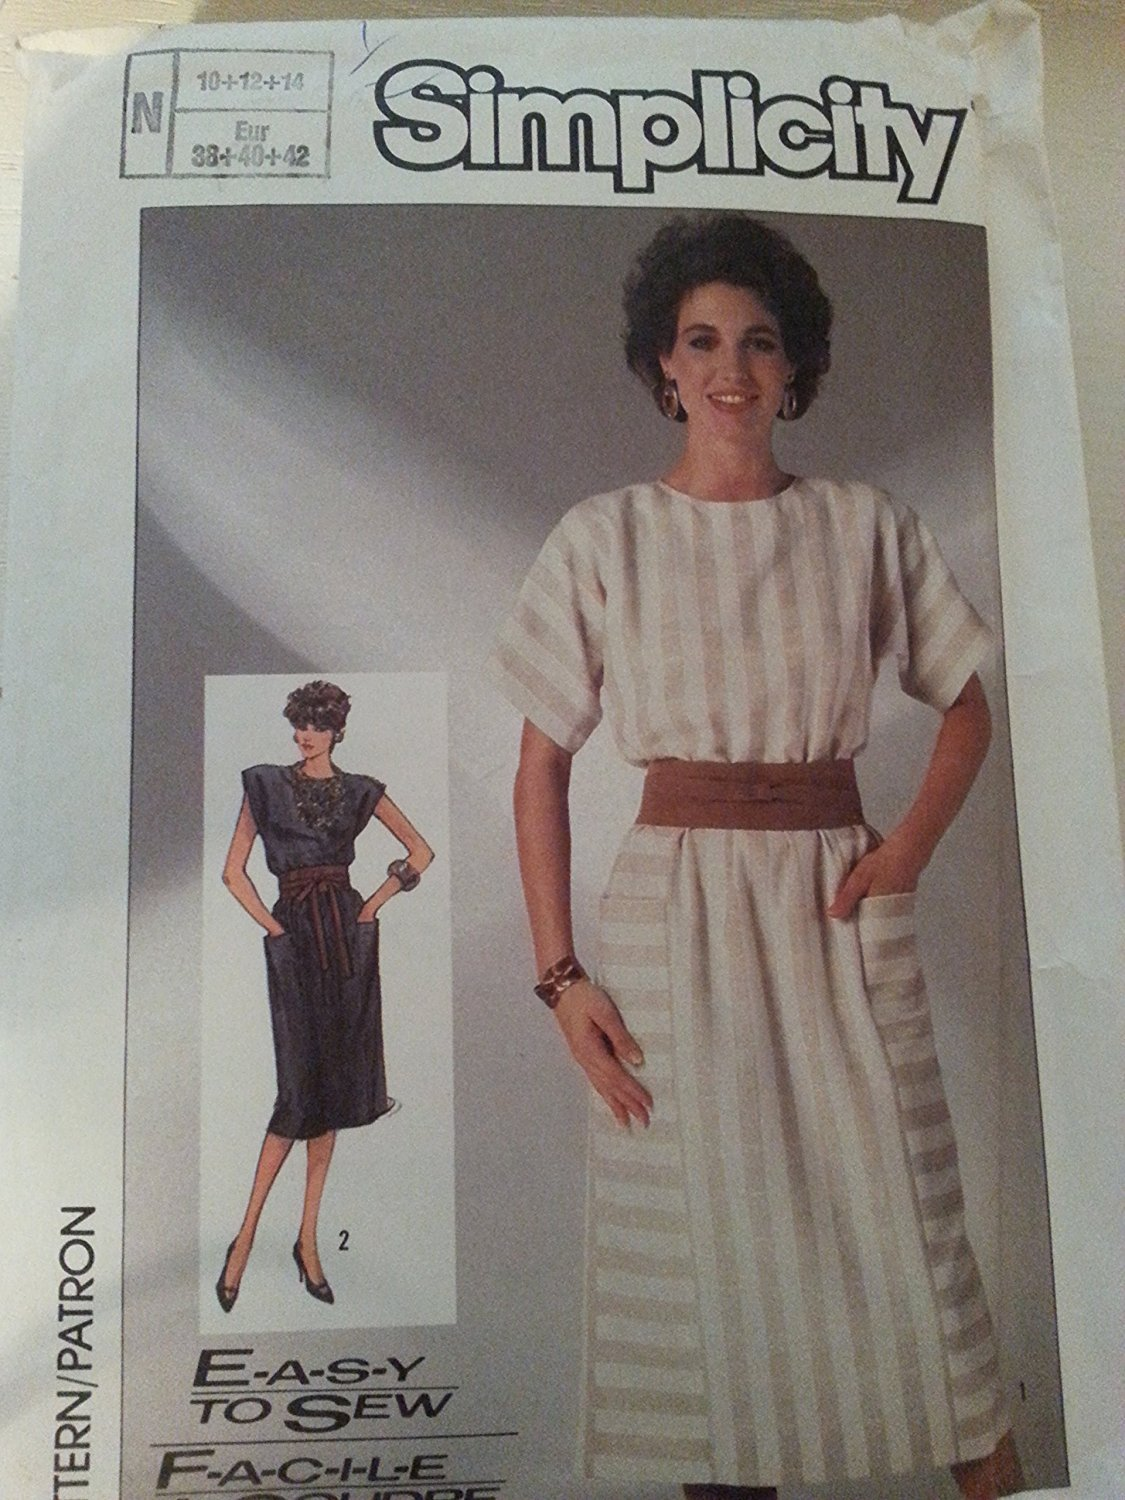 Simplicity 7553 Misses Fast to Sew Dress N (10-12-14)